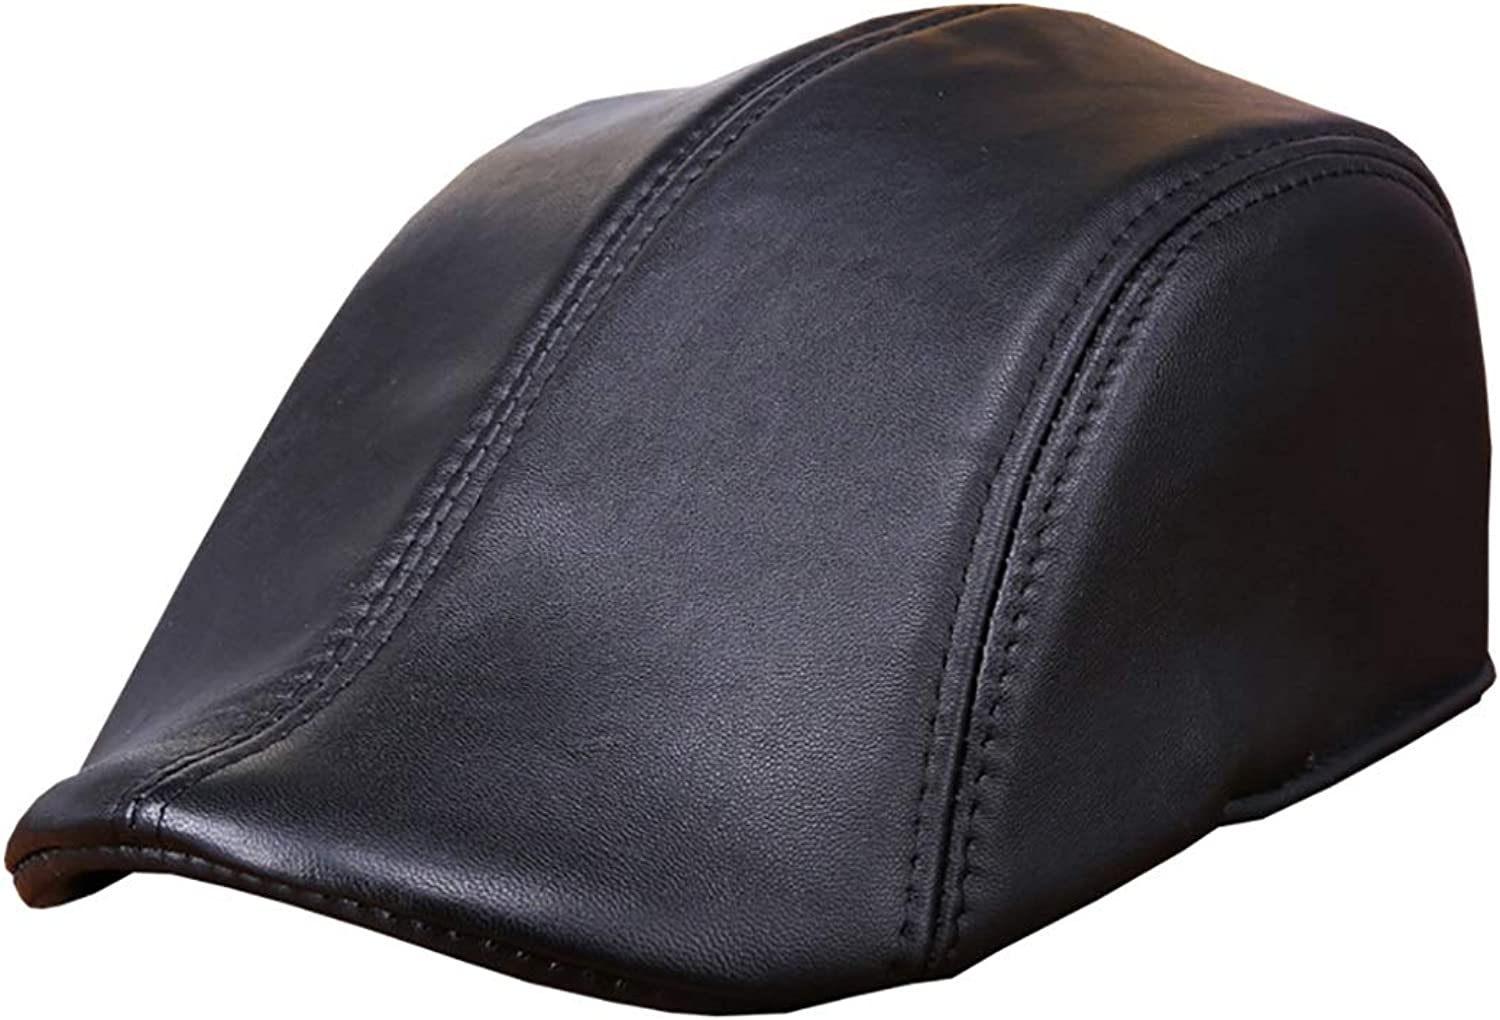 Beret Men and Women Leather Hat Sheep Skin Fashion Hat Cap Solid color Wild Classic, Exquisite Perfect Version, Fashion, Grace and Temperature.